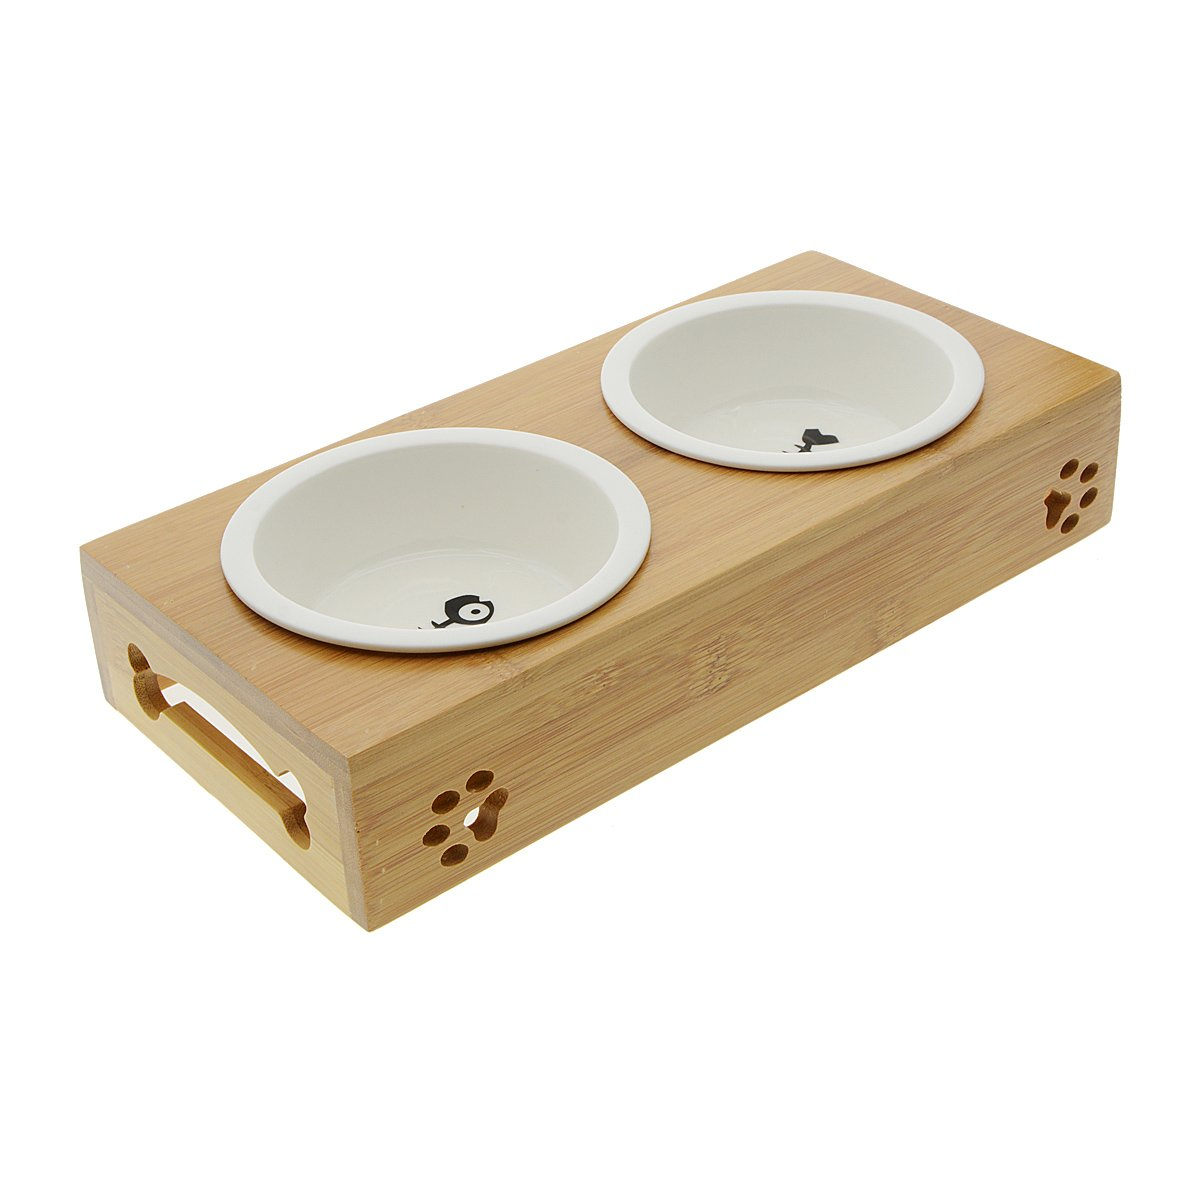 Saim Small Dogs and Cats Bowls Elevated Pet Feeder by Saim (Image #1)